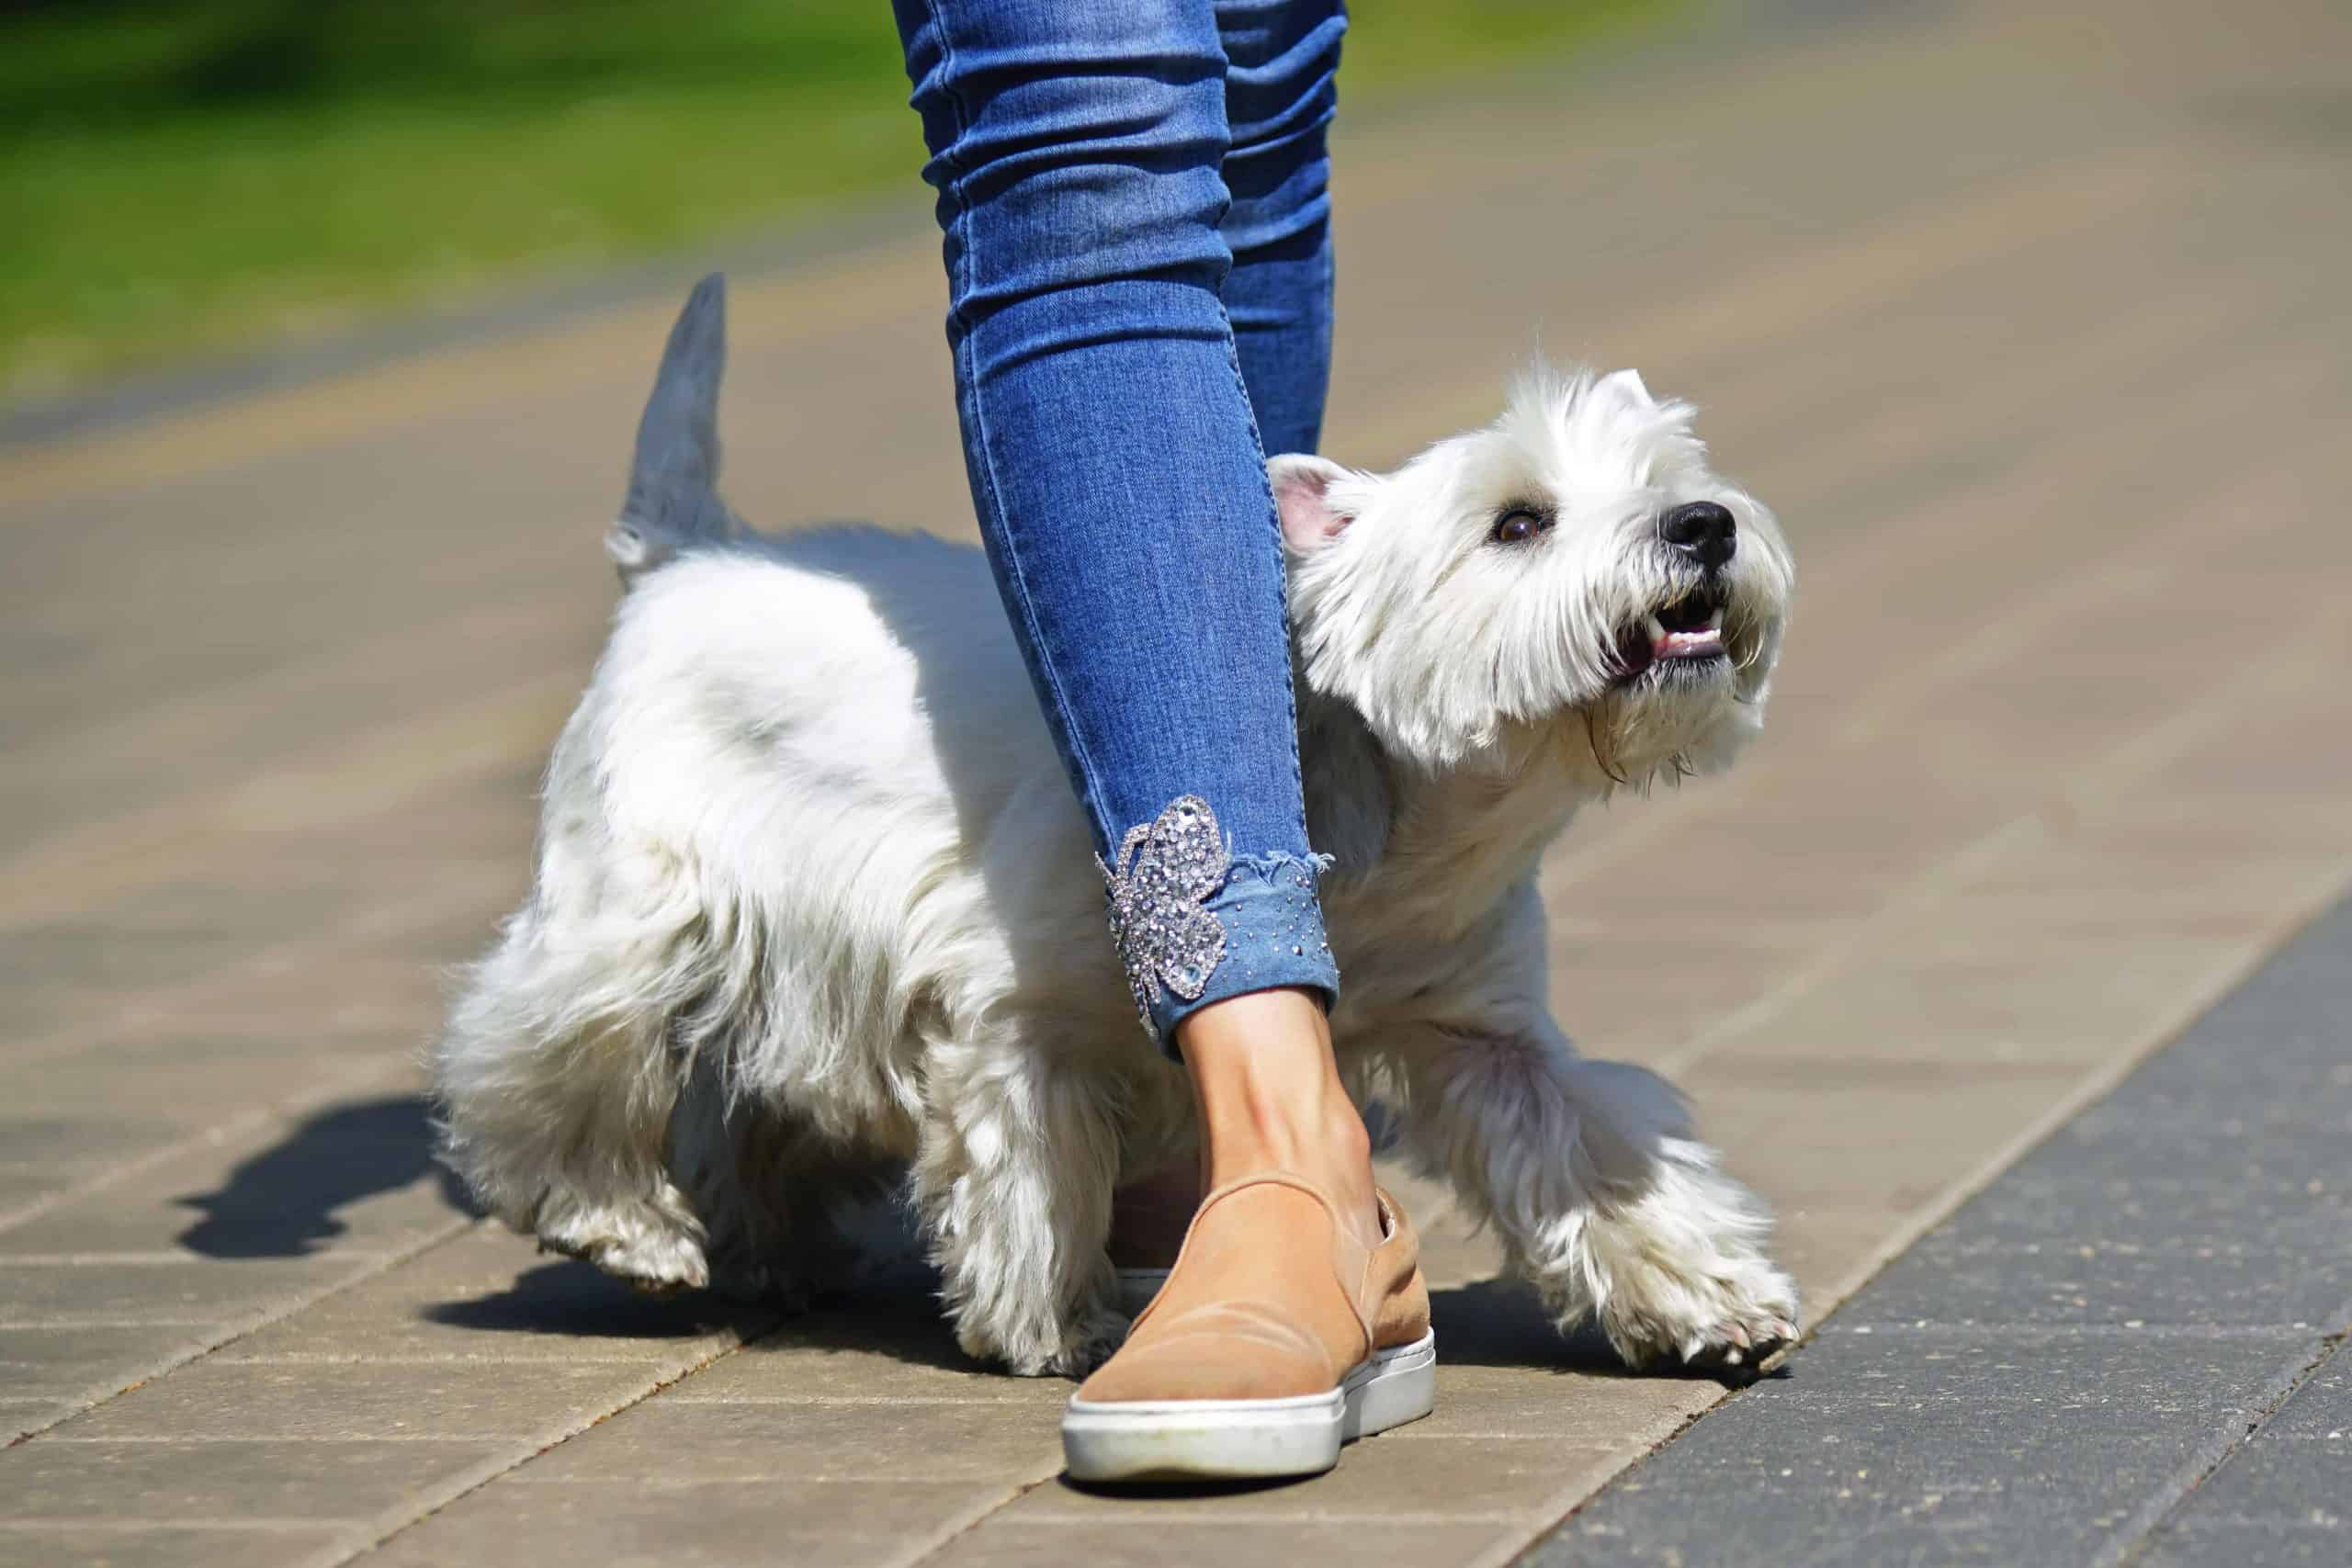 West Highland Terrier weaves through owner's leg. One popular dog trick you can teach your dog is leg weaving: a trick where your dog goes between your legs in a figure-eight pattern.